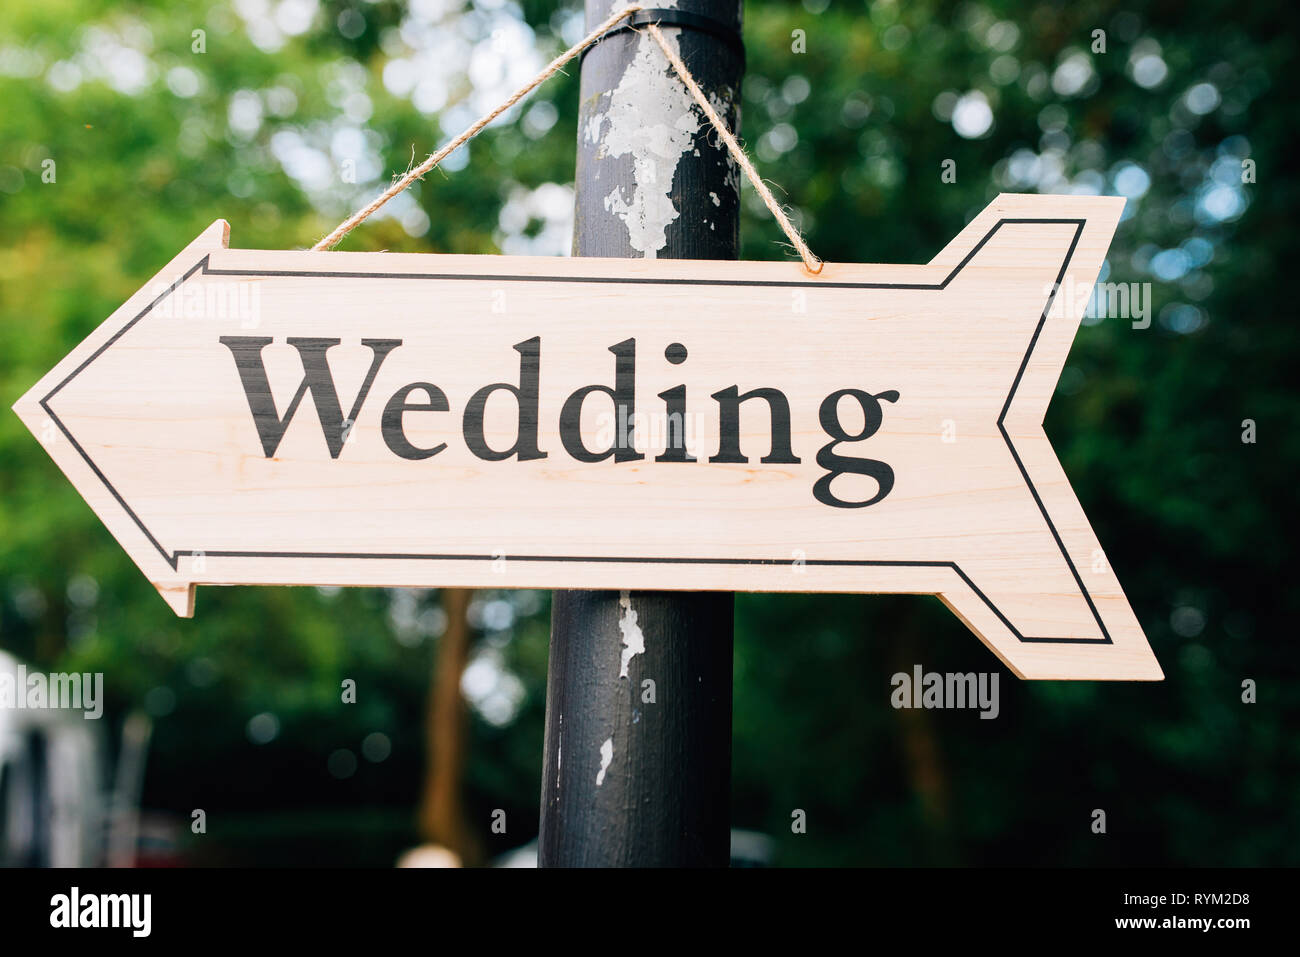 hanging wooden arrow with the word wedding written on it - Stock Image